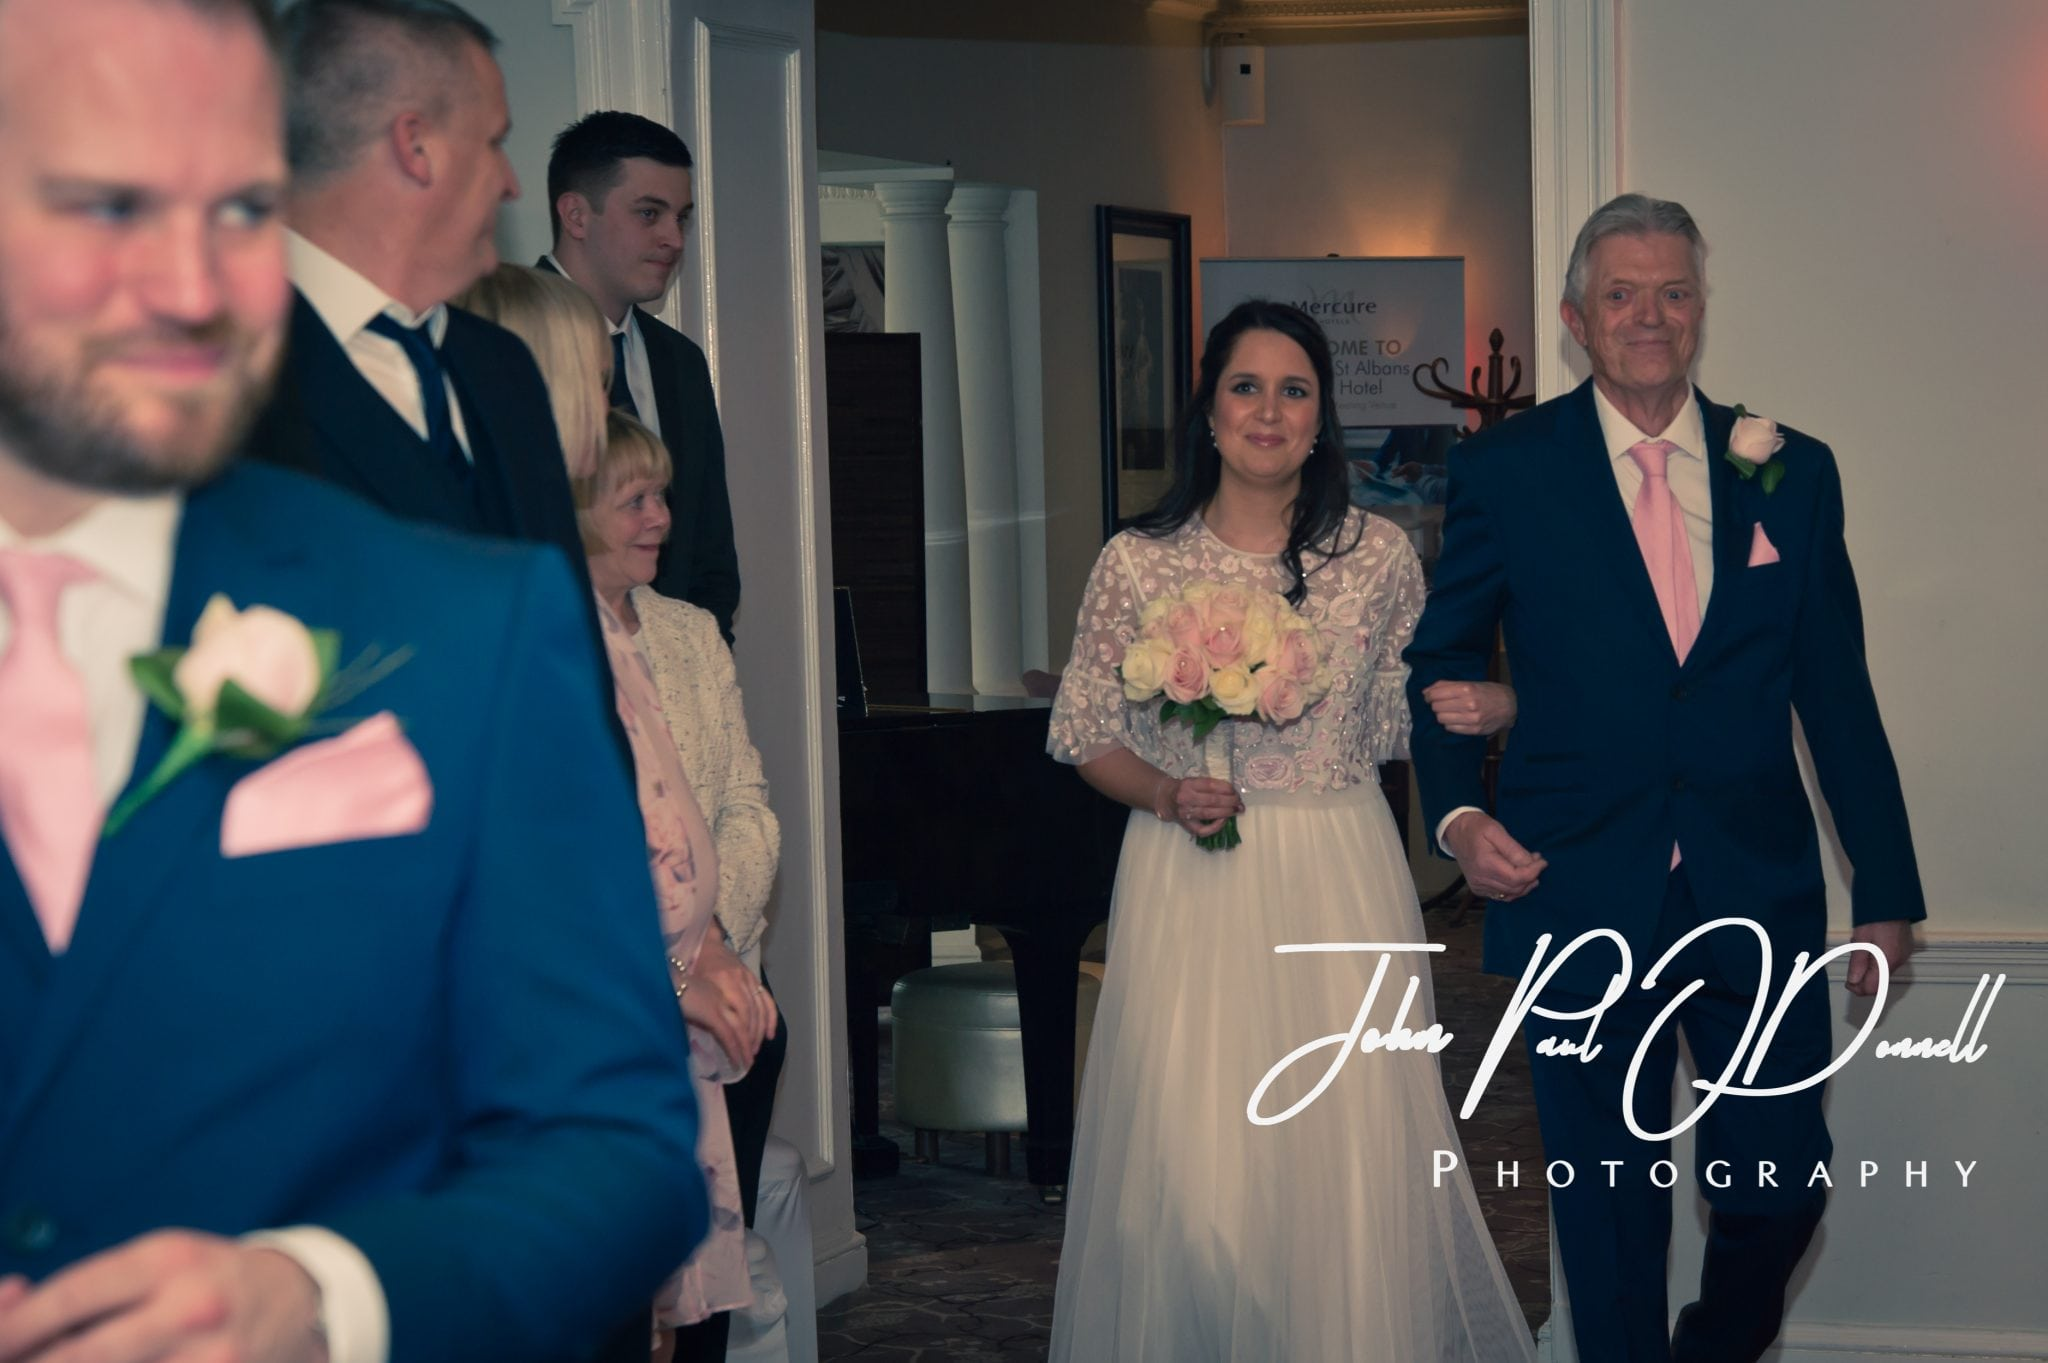 Wedding Photography Mercure Hotel St albans - Anthony and Sarah